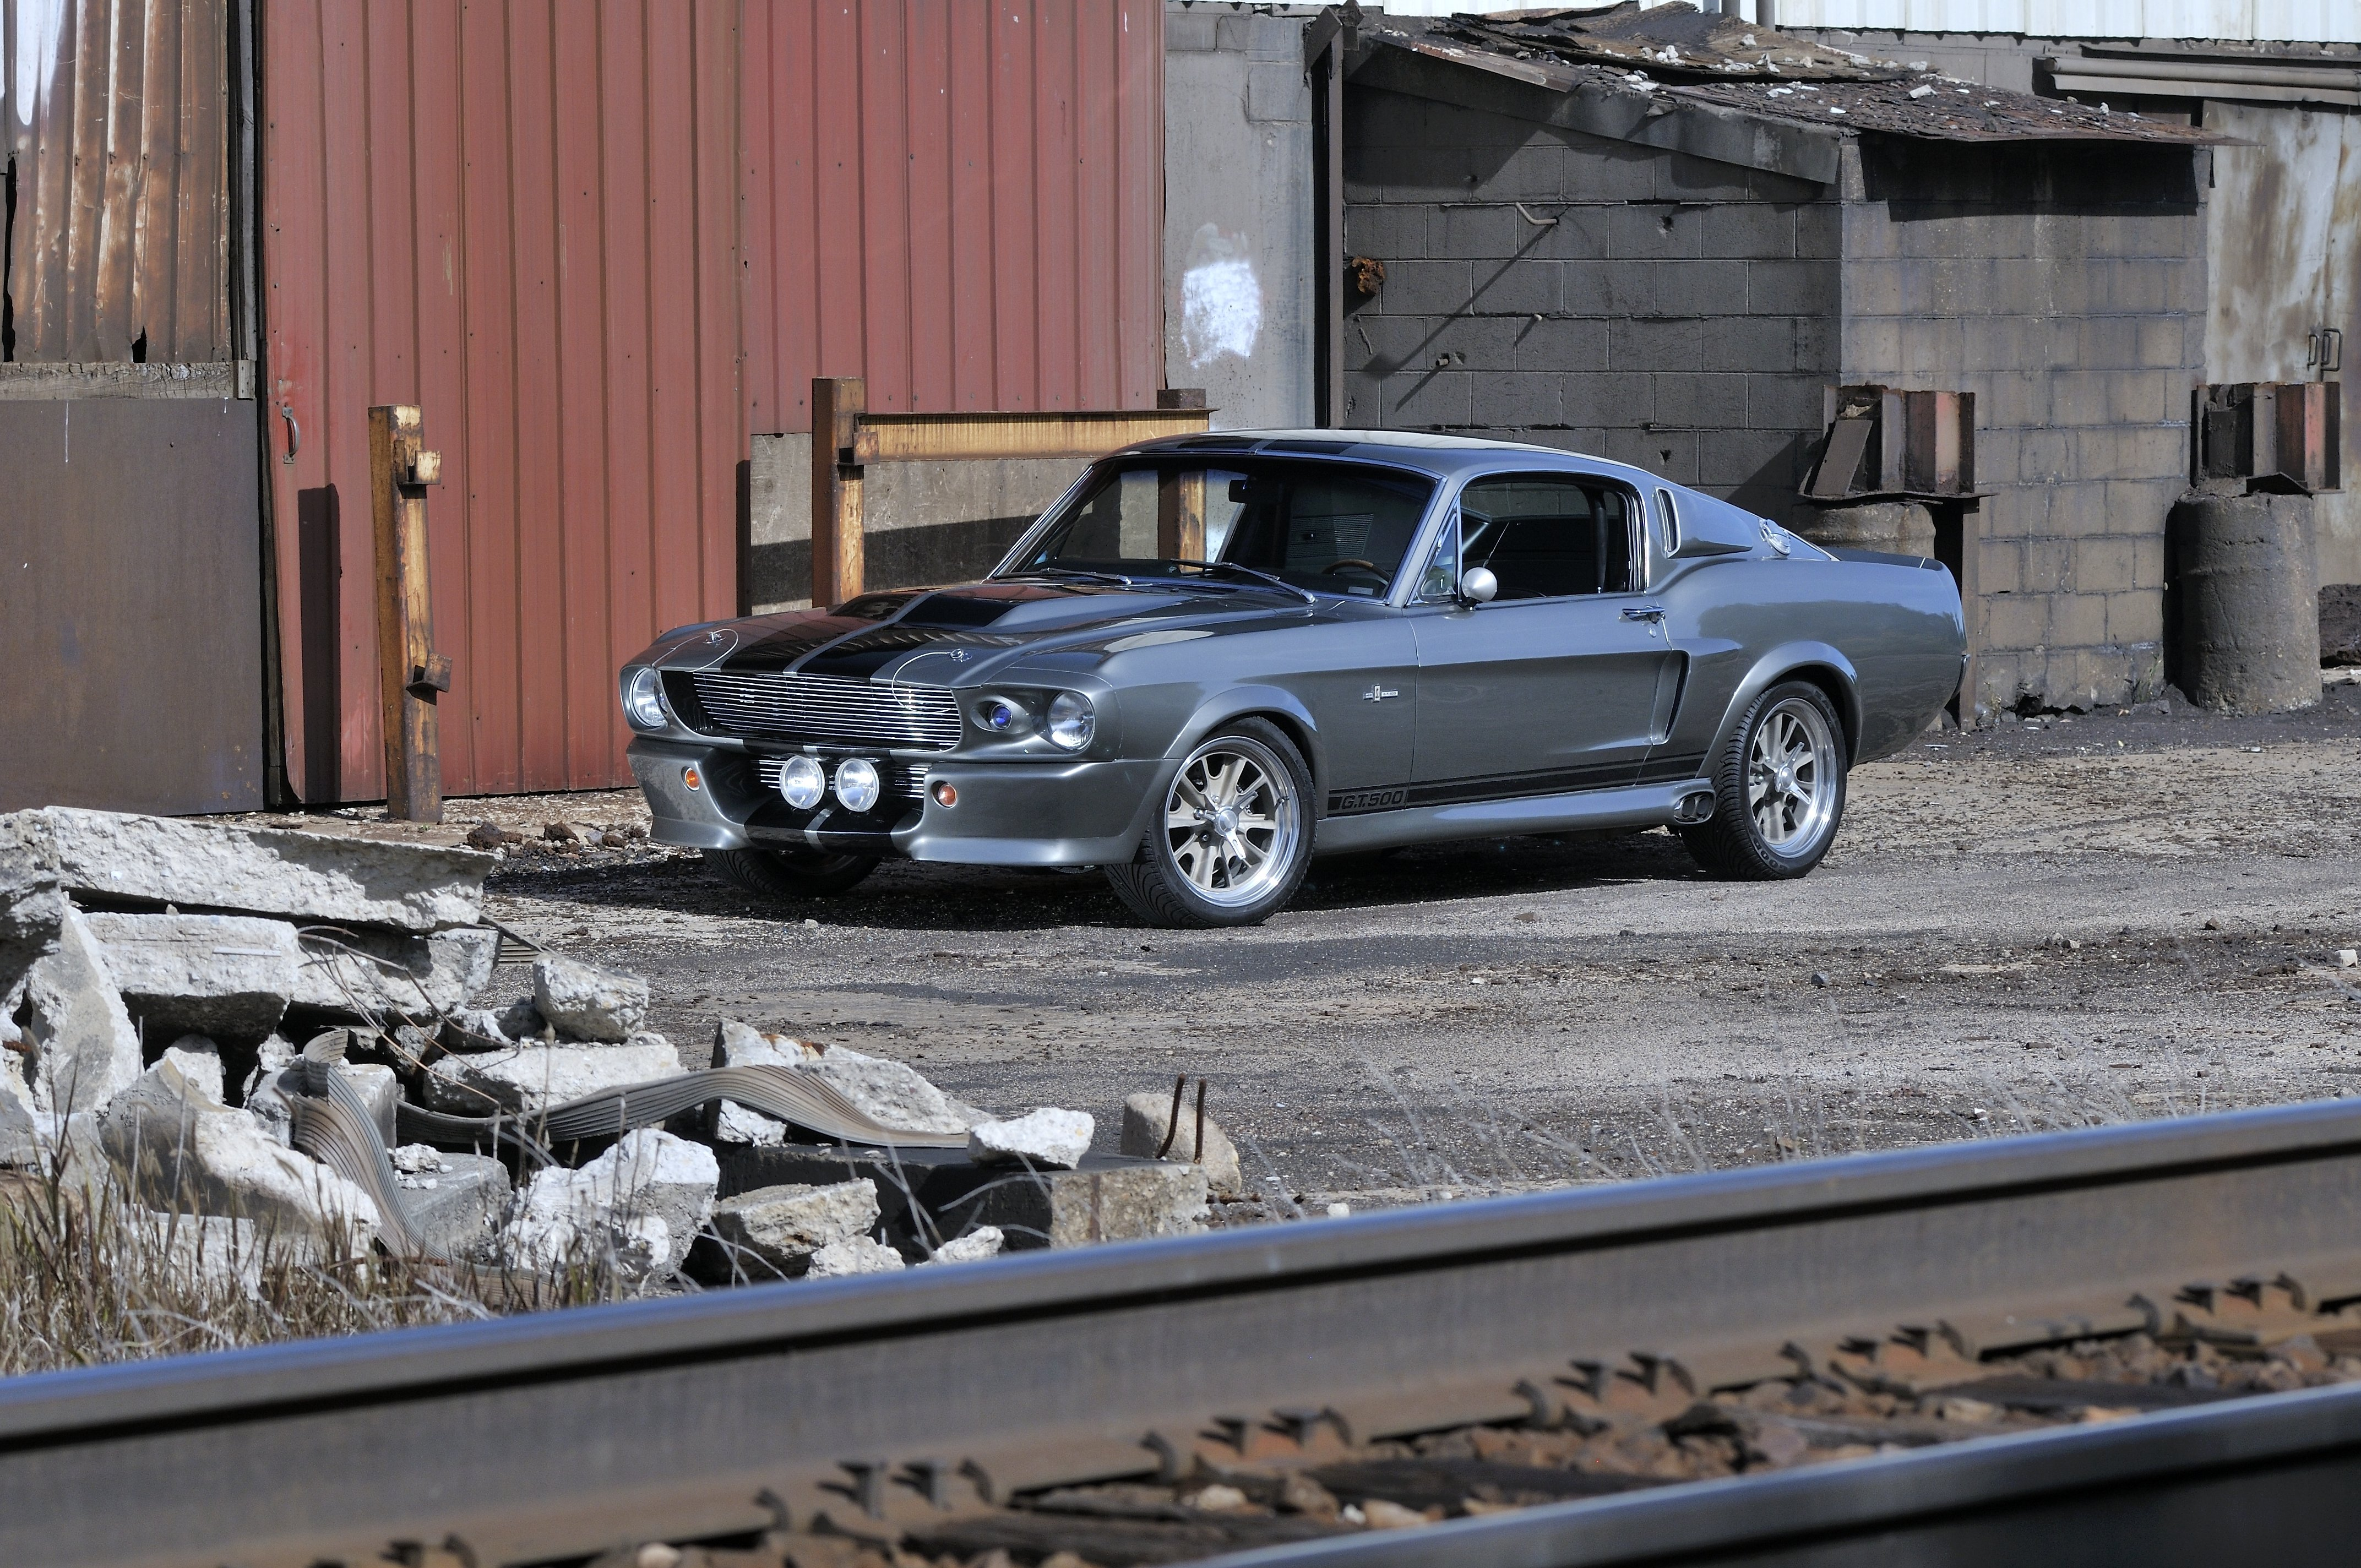 1967 ford mustang shelby gt500 eleanor gone in 60 seconds muscle street rod machine usa 4288x2848 15 wallpaper 4288x2848 653481 wallpaperup